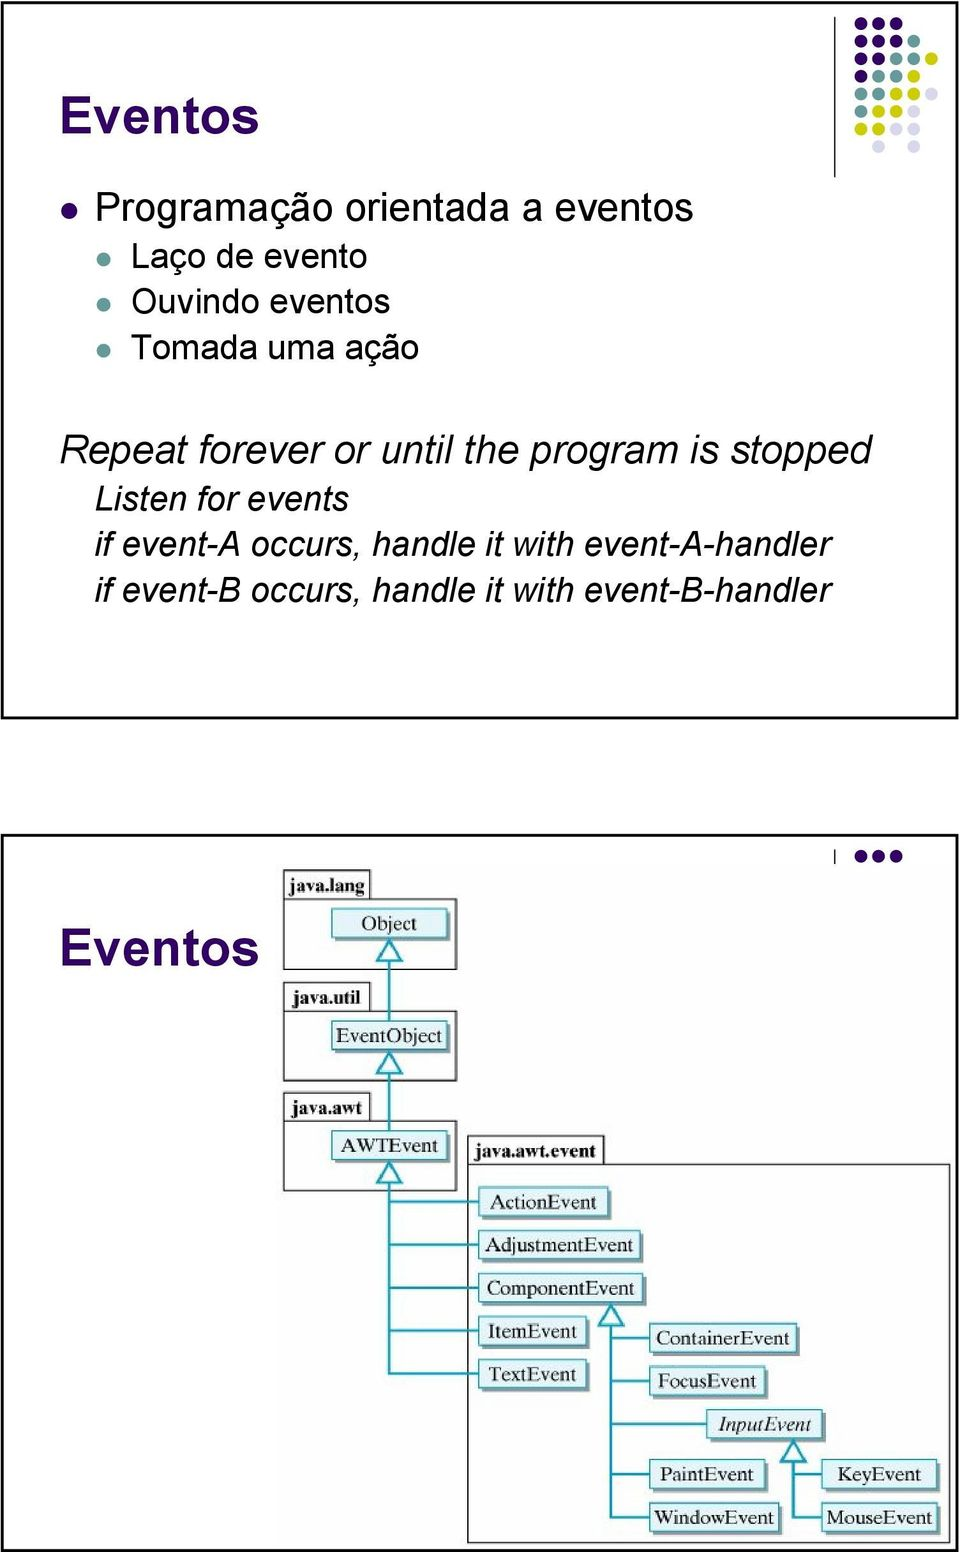 stopped Listen for events if event-a occurs, handle it with